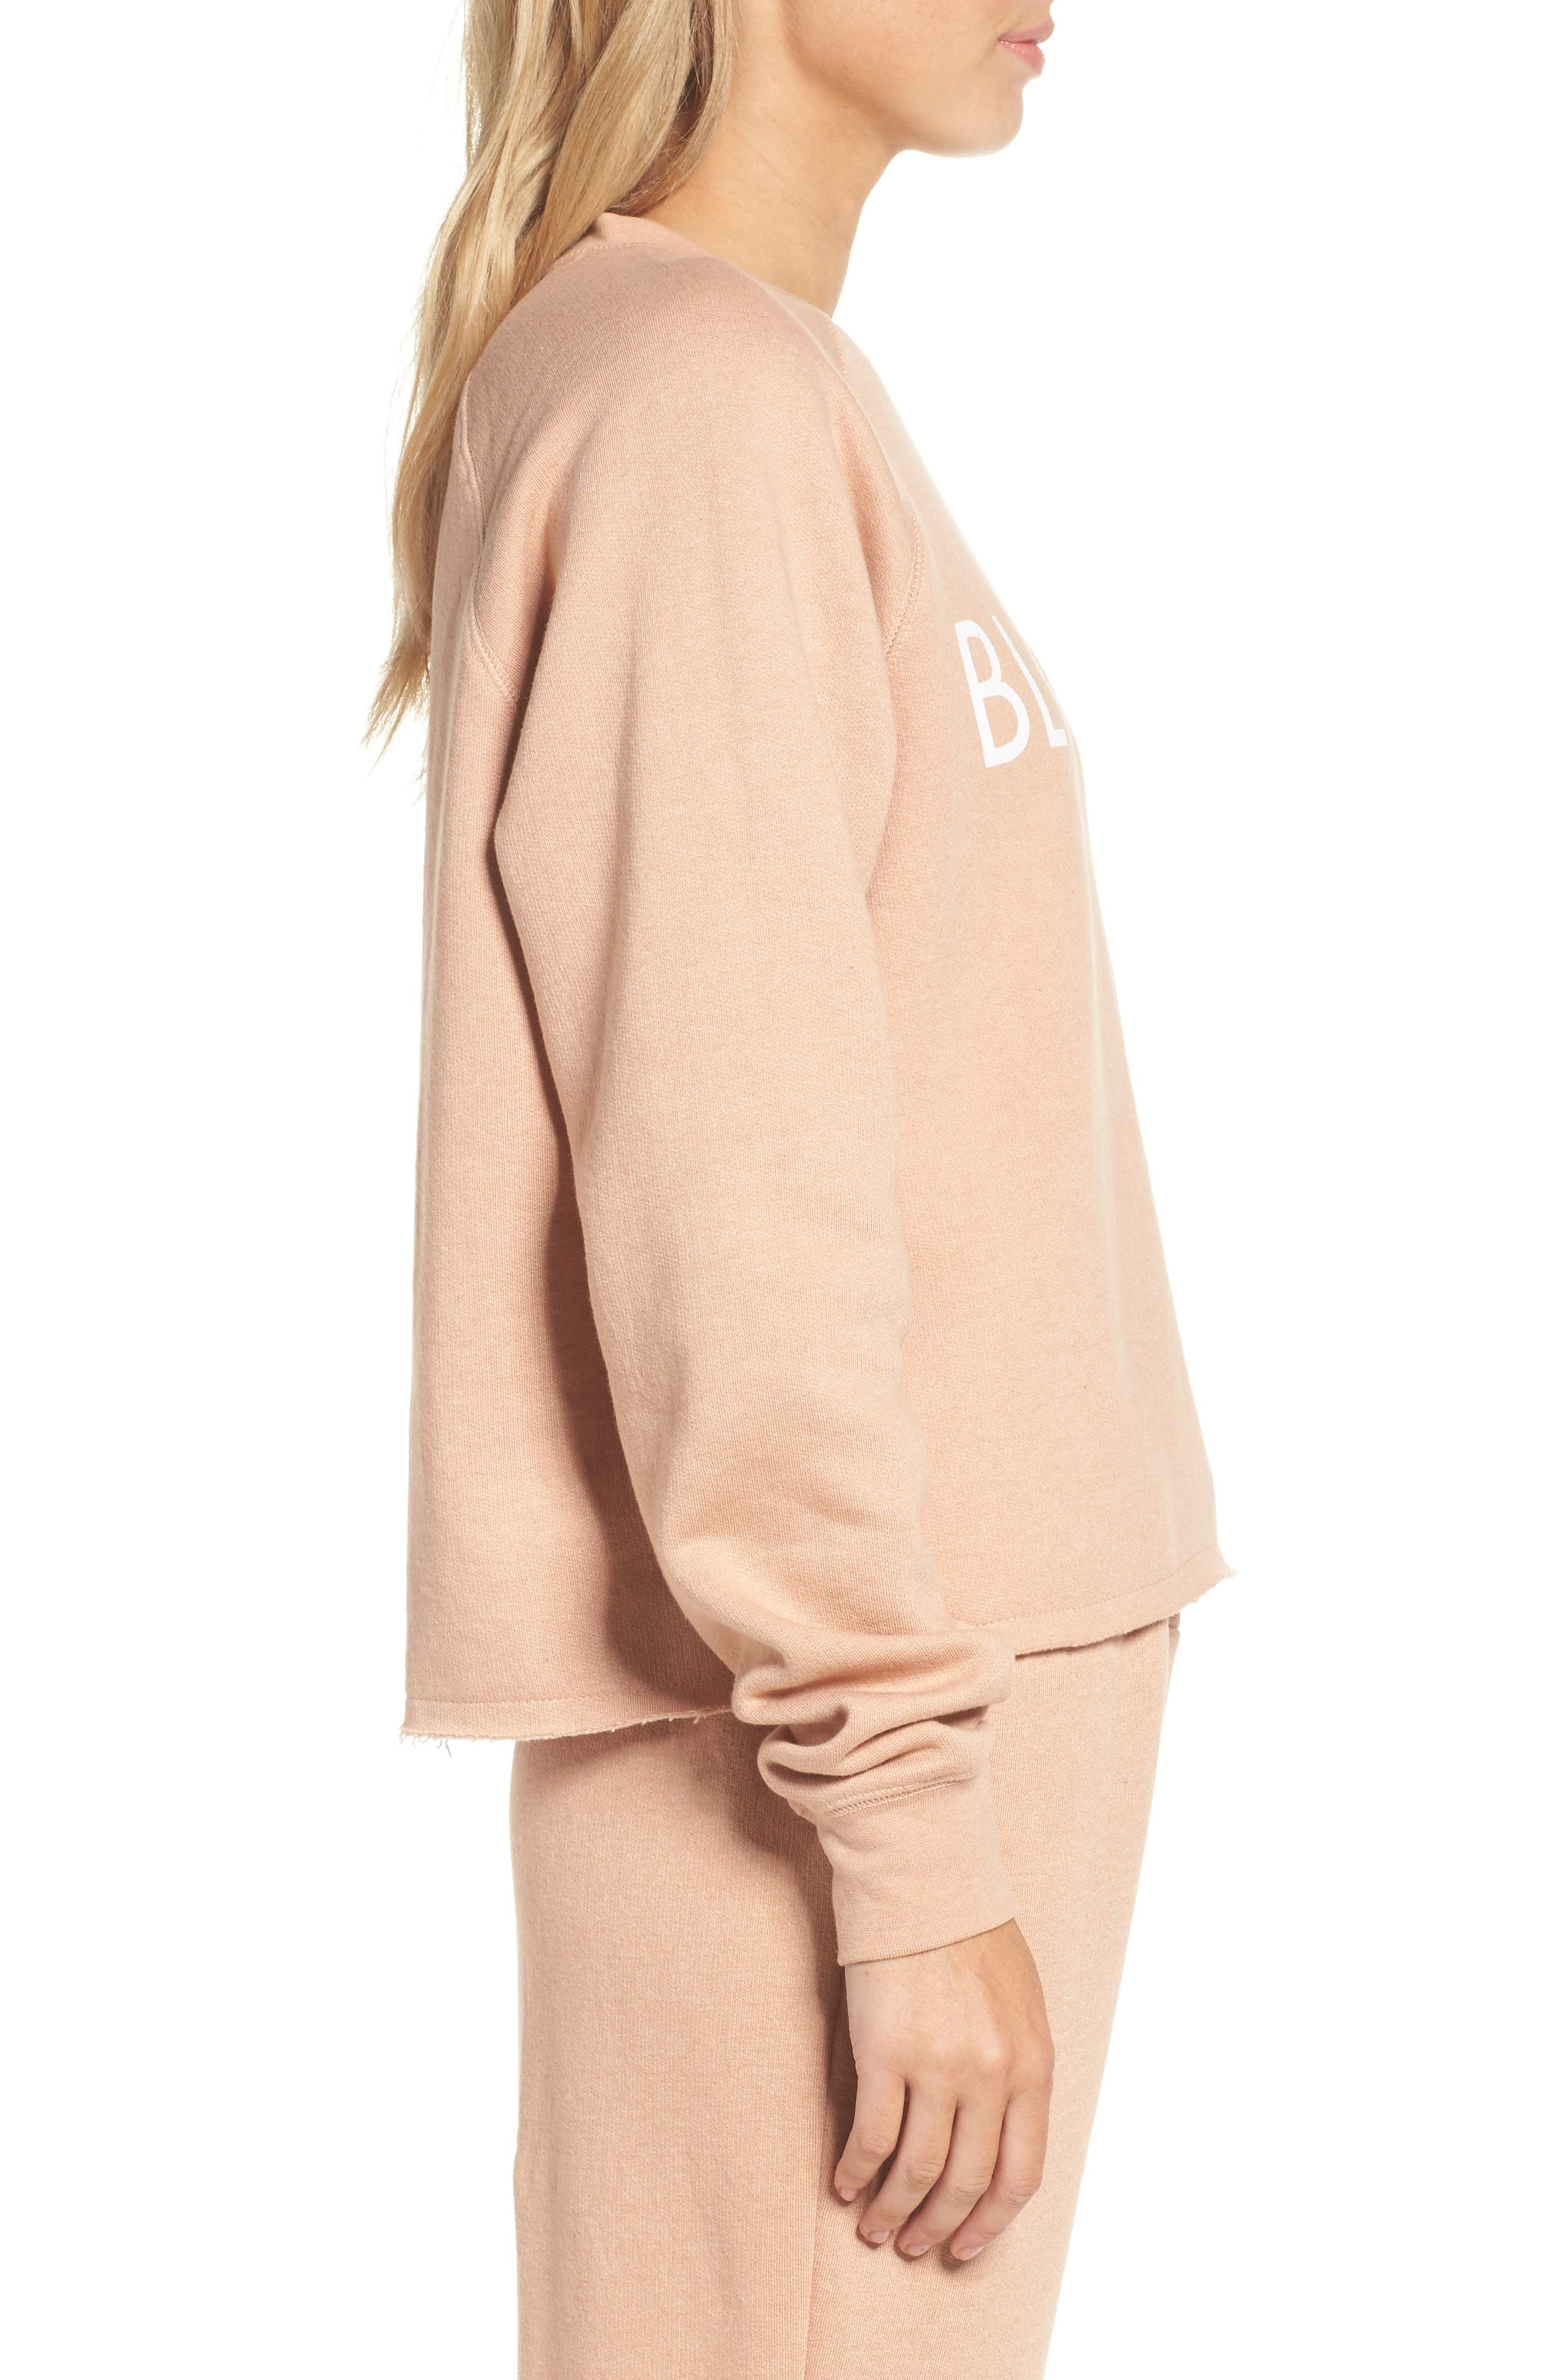 Middle Sister Blonde Sweatshirt,                             Alternate thumbnail 3, color,                             250